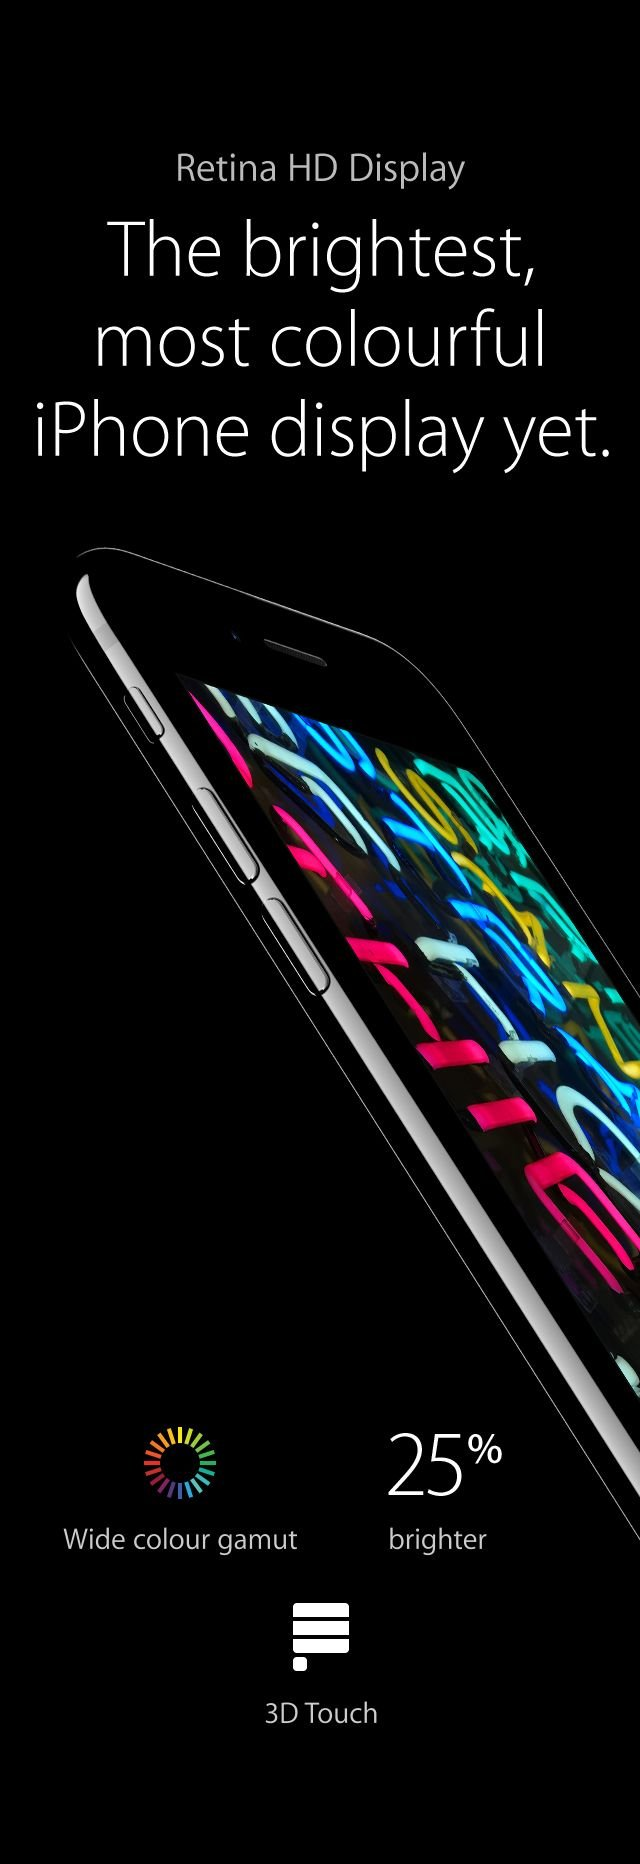 Retina HD Display - The brightest, most colourful iPhone display yet.